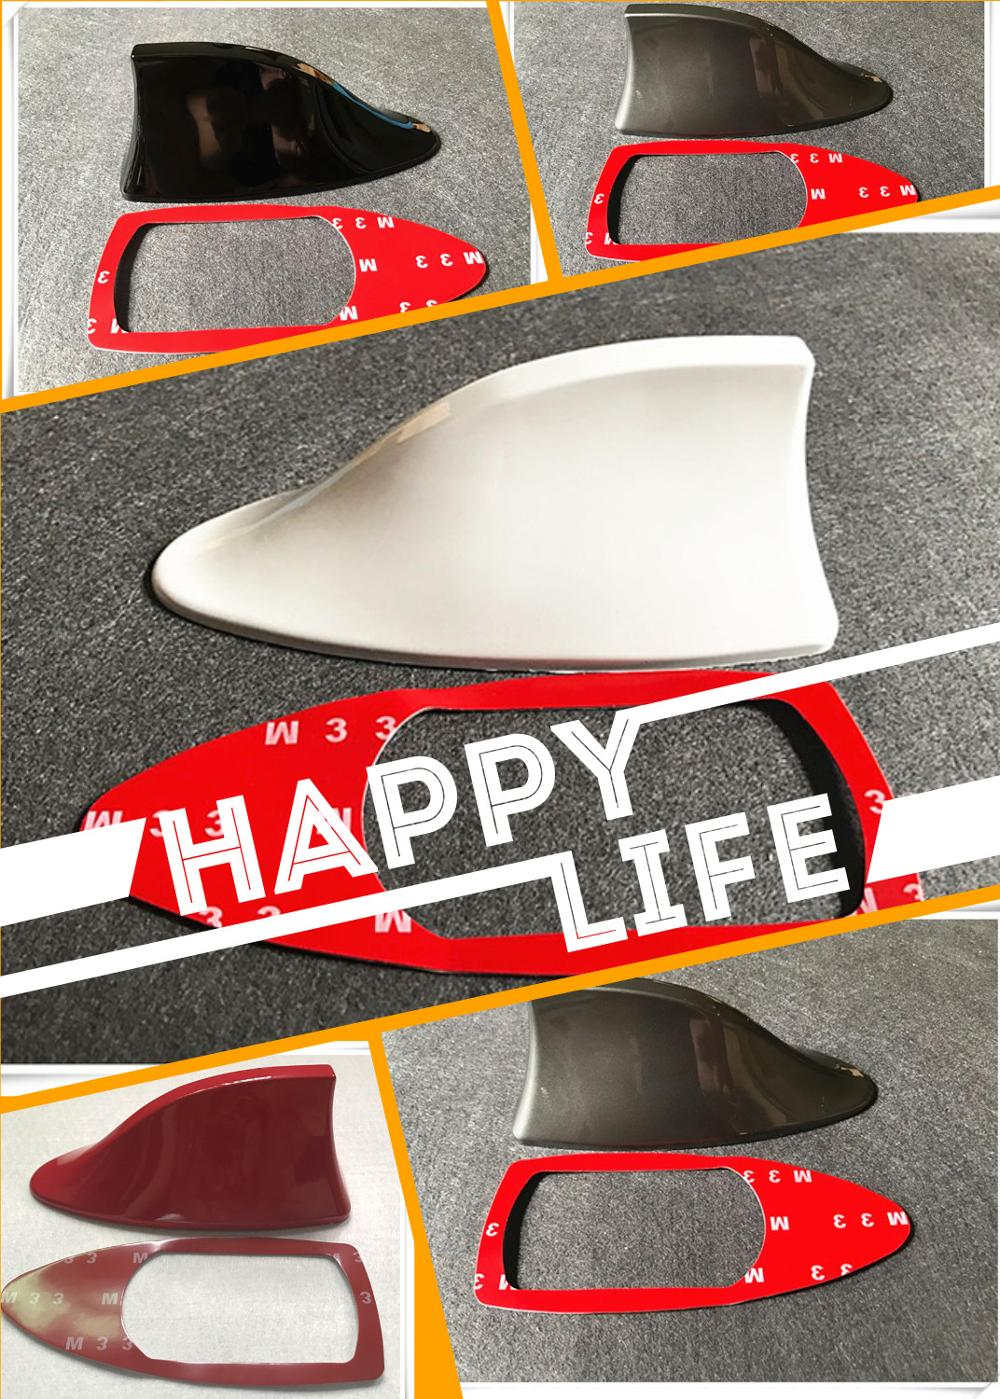 Car-styling Car Shark Fin Antenna Special Car <font><b>Radio</b></font> Aerials Auto Antenna Signal For <font><b>Volvo</b></font> C30 <font><b>C70</b></font> S60 S90 V40 V60 XC60 XC90 S80L image